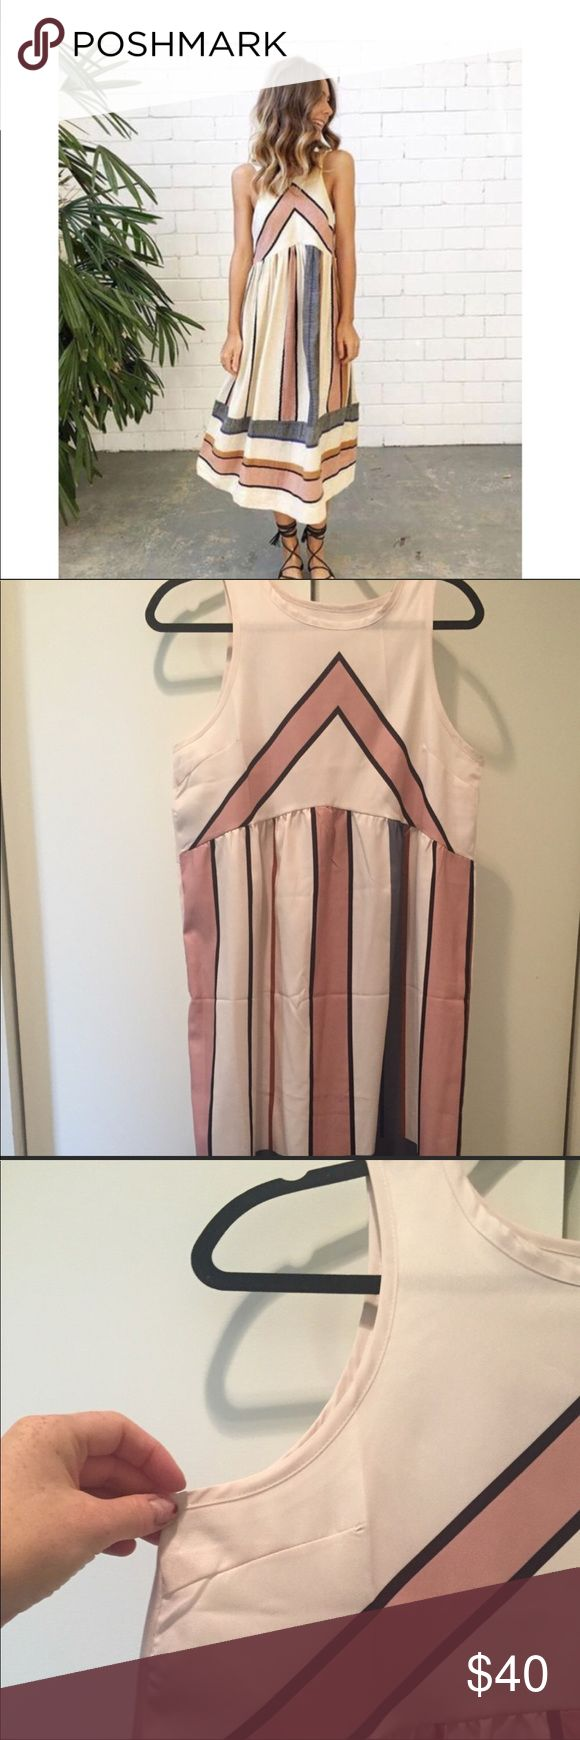 Stripes Midi Dress Size L Material: polyester and spandex   Machine wash cold, no bleach   Relaxed fit Dresses Midi